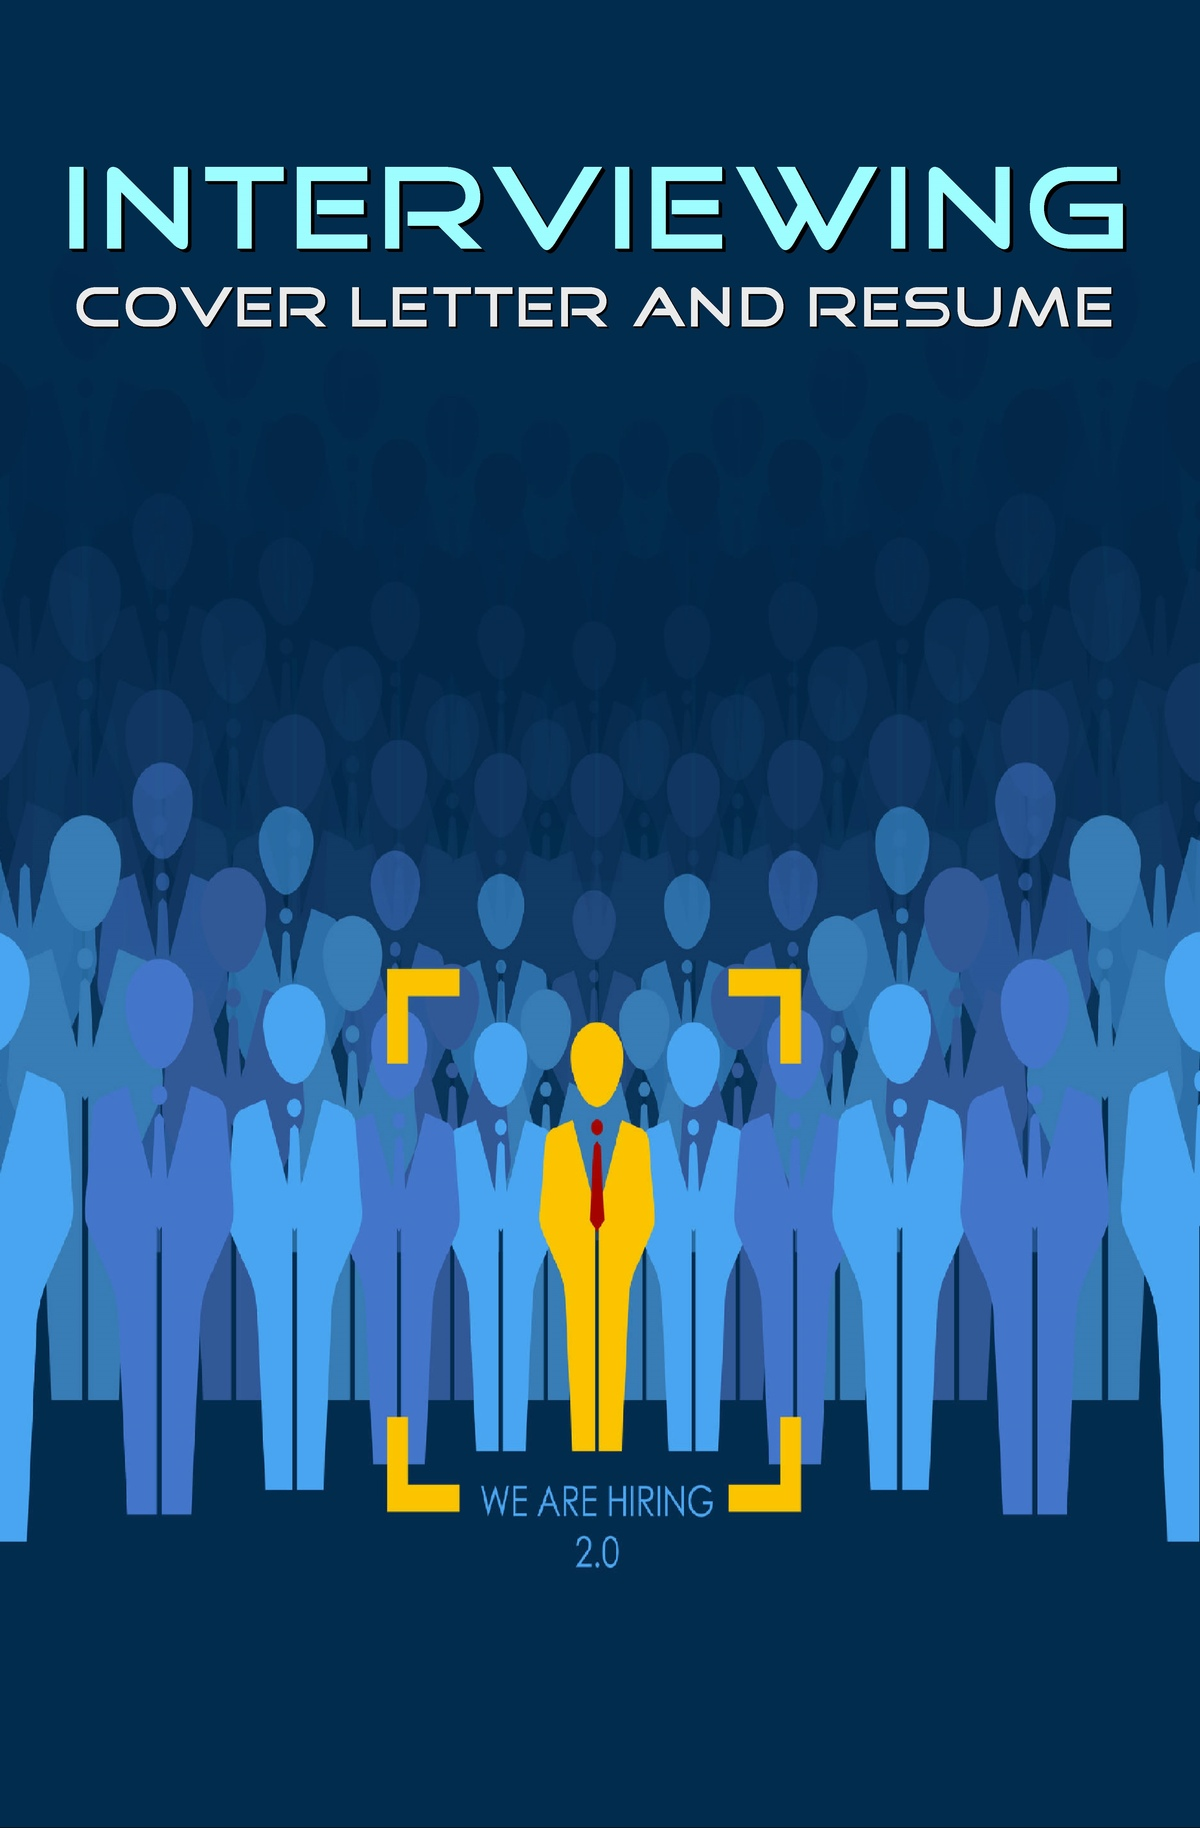 L7013 - Create a Great Cover Letter and Resume